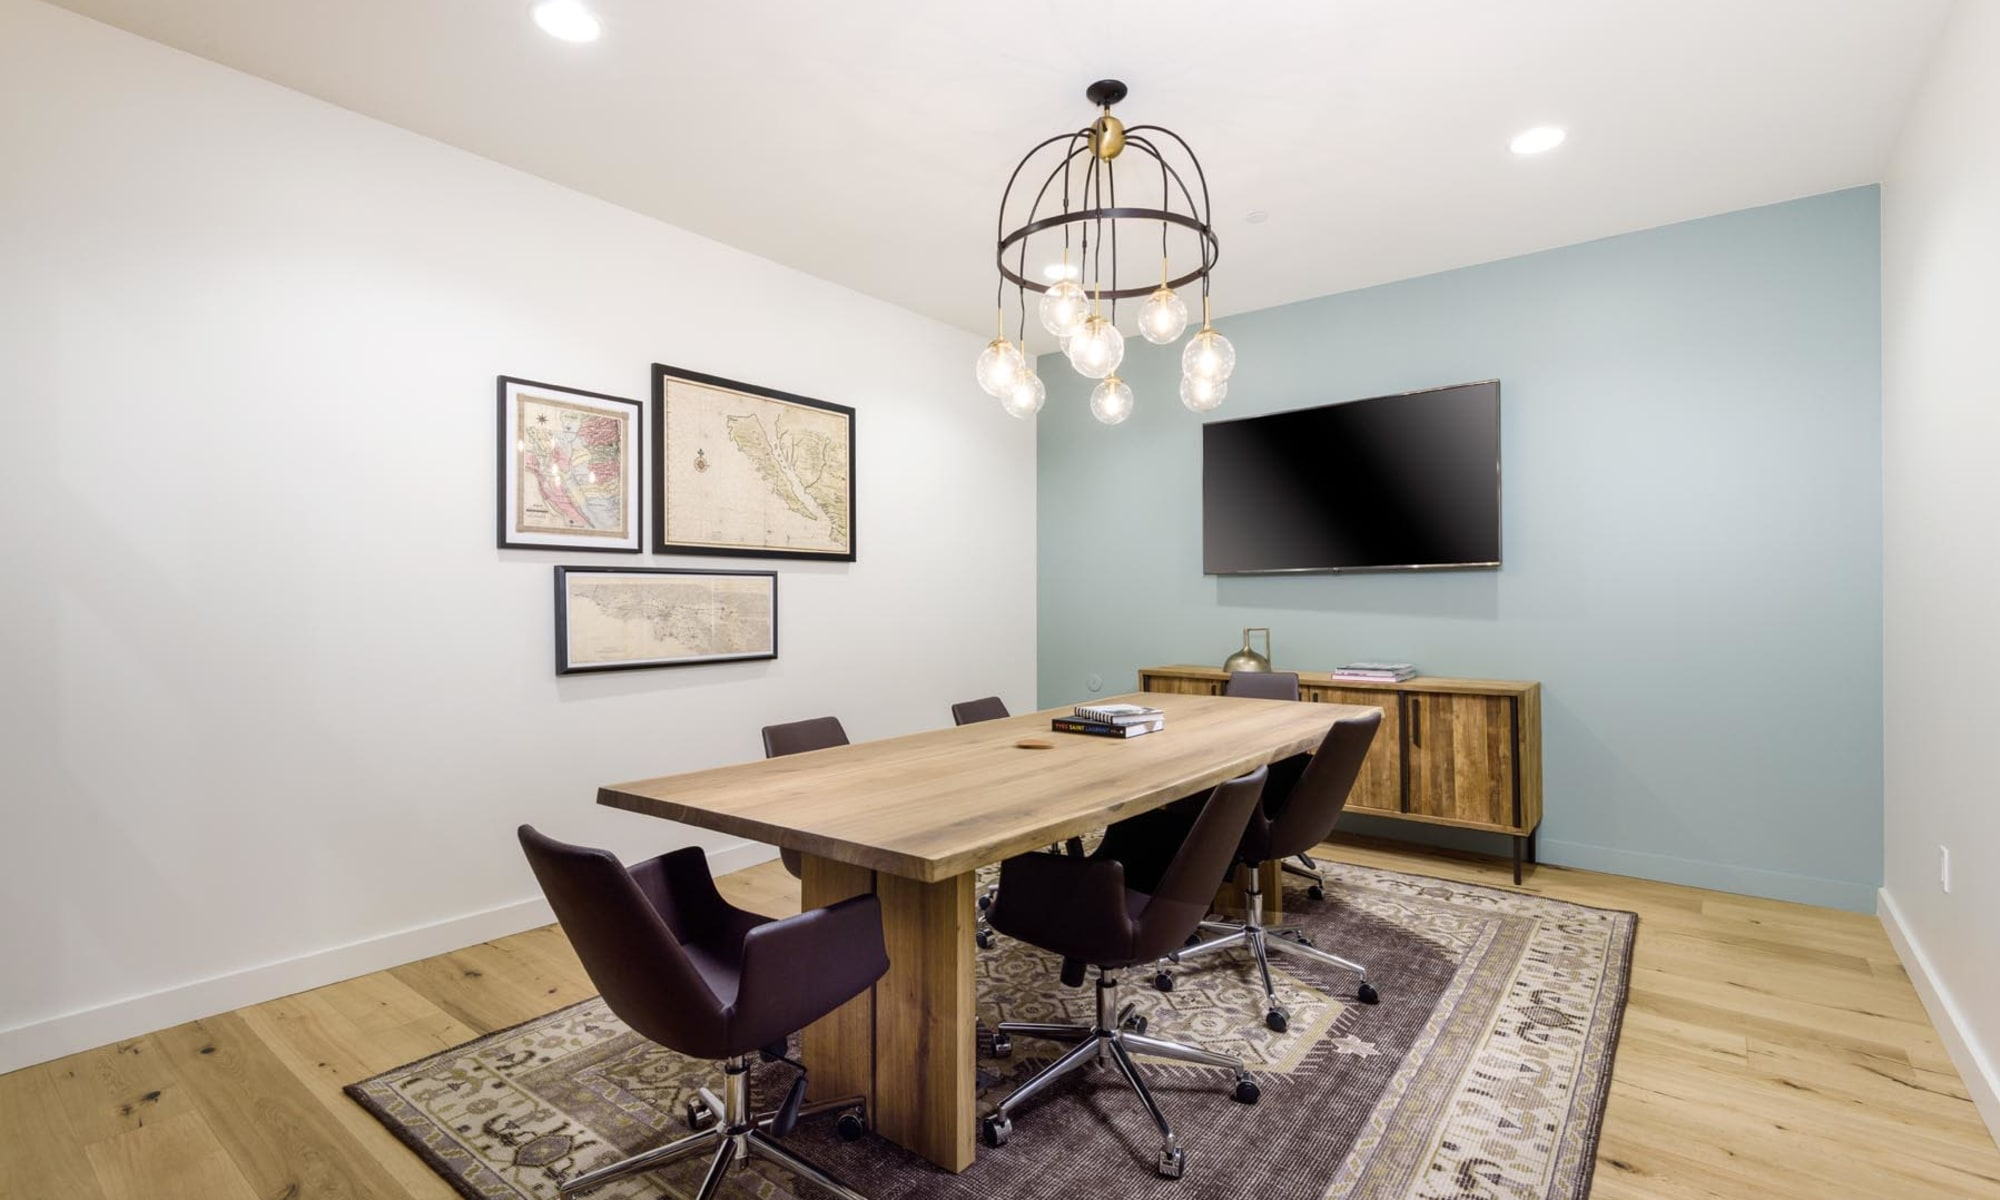 Meeting room with a large conference table and flatscreen TV for resident use in the business center at Mission Hills in Camarillo, California